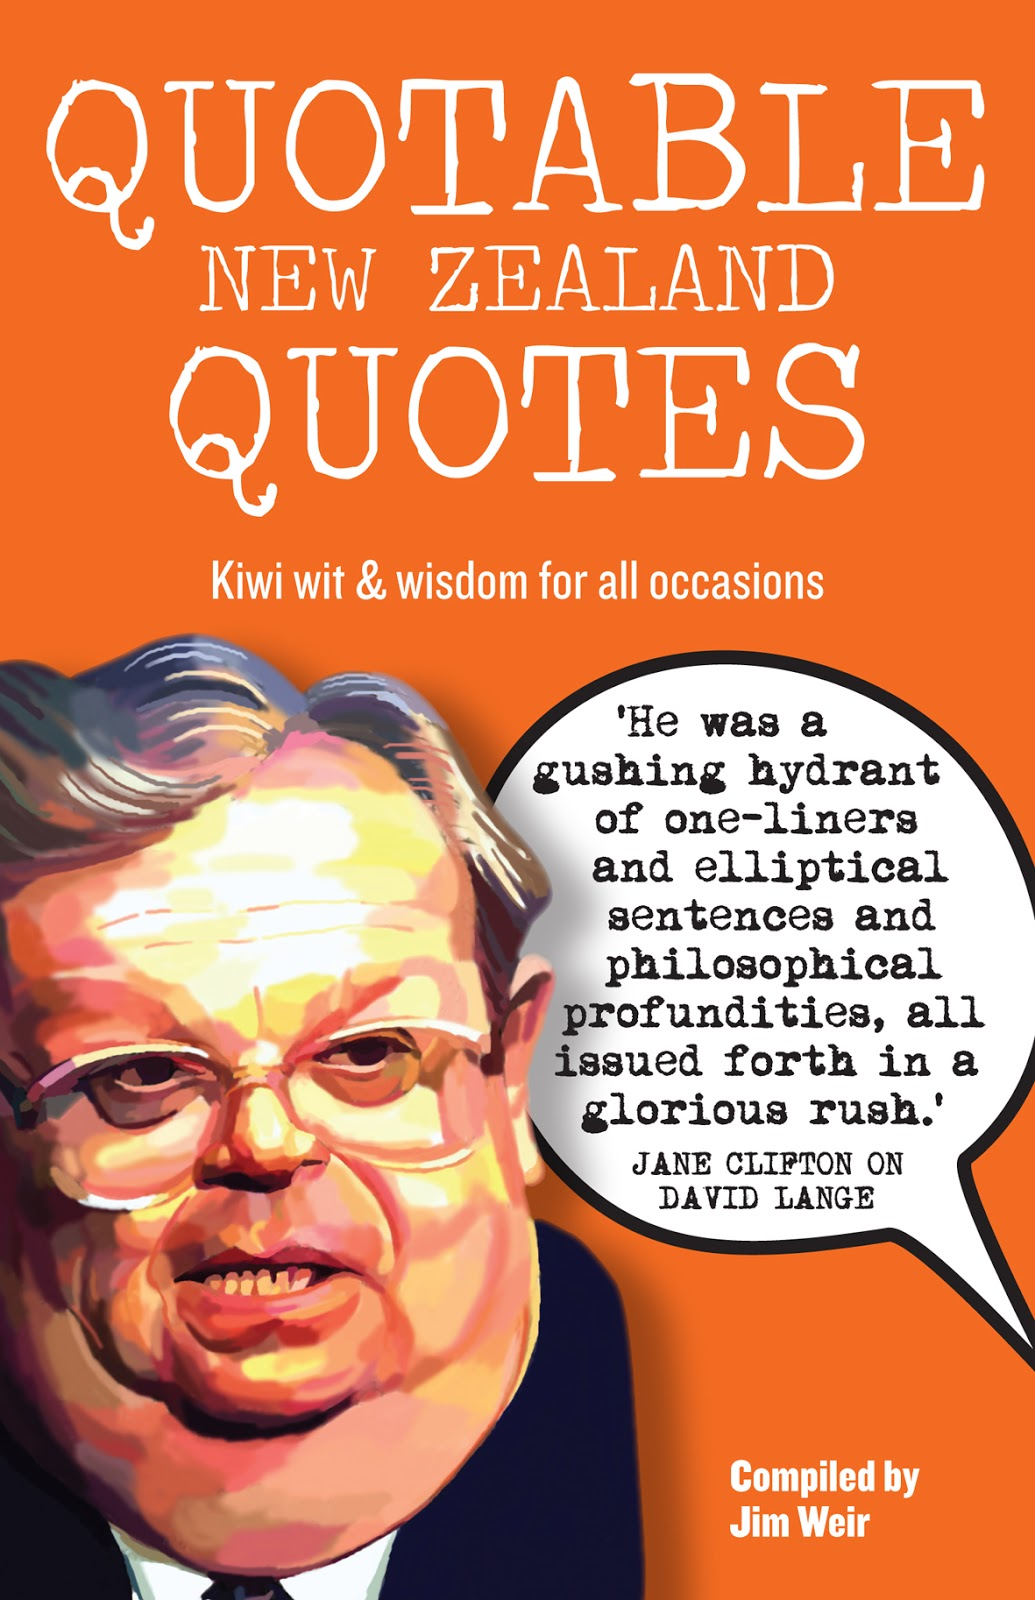 Holland quote #2